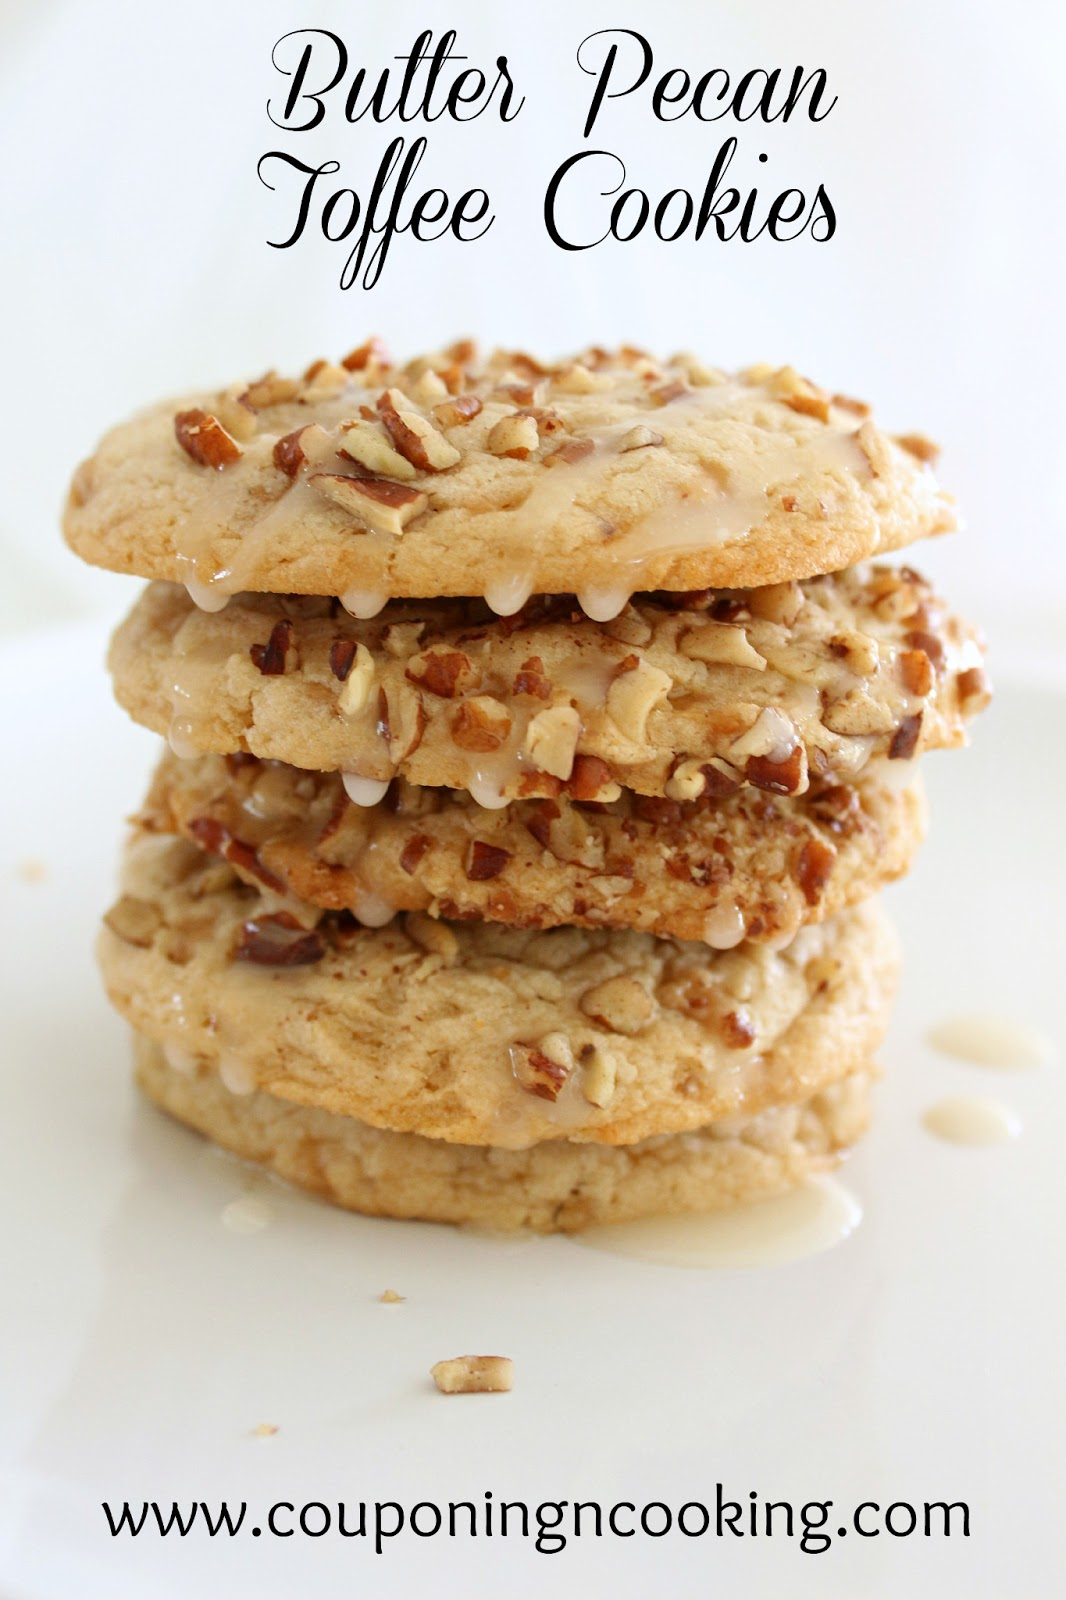 Couponing & Cooking: Glazed Butter Pecan Toffee Cookies